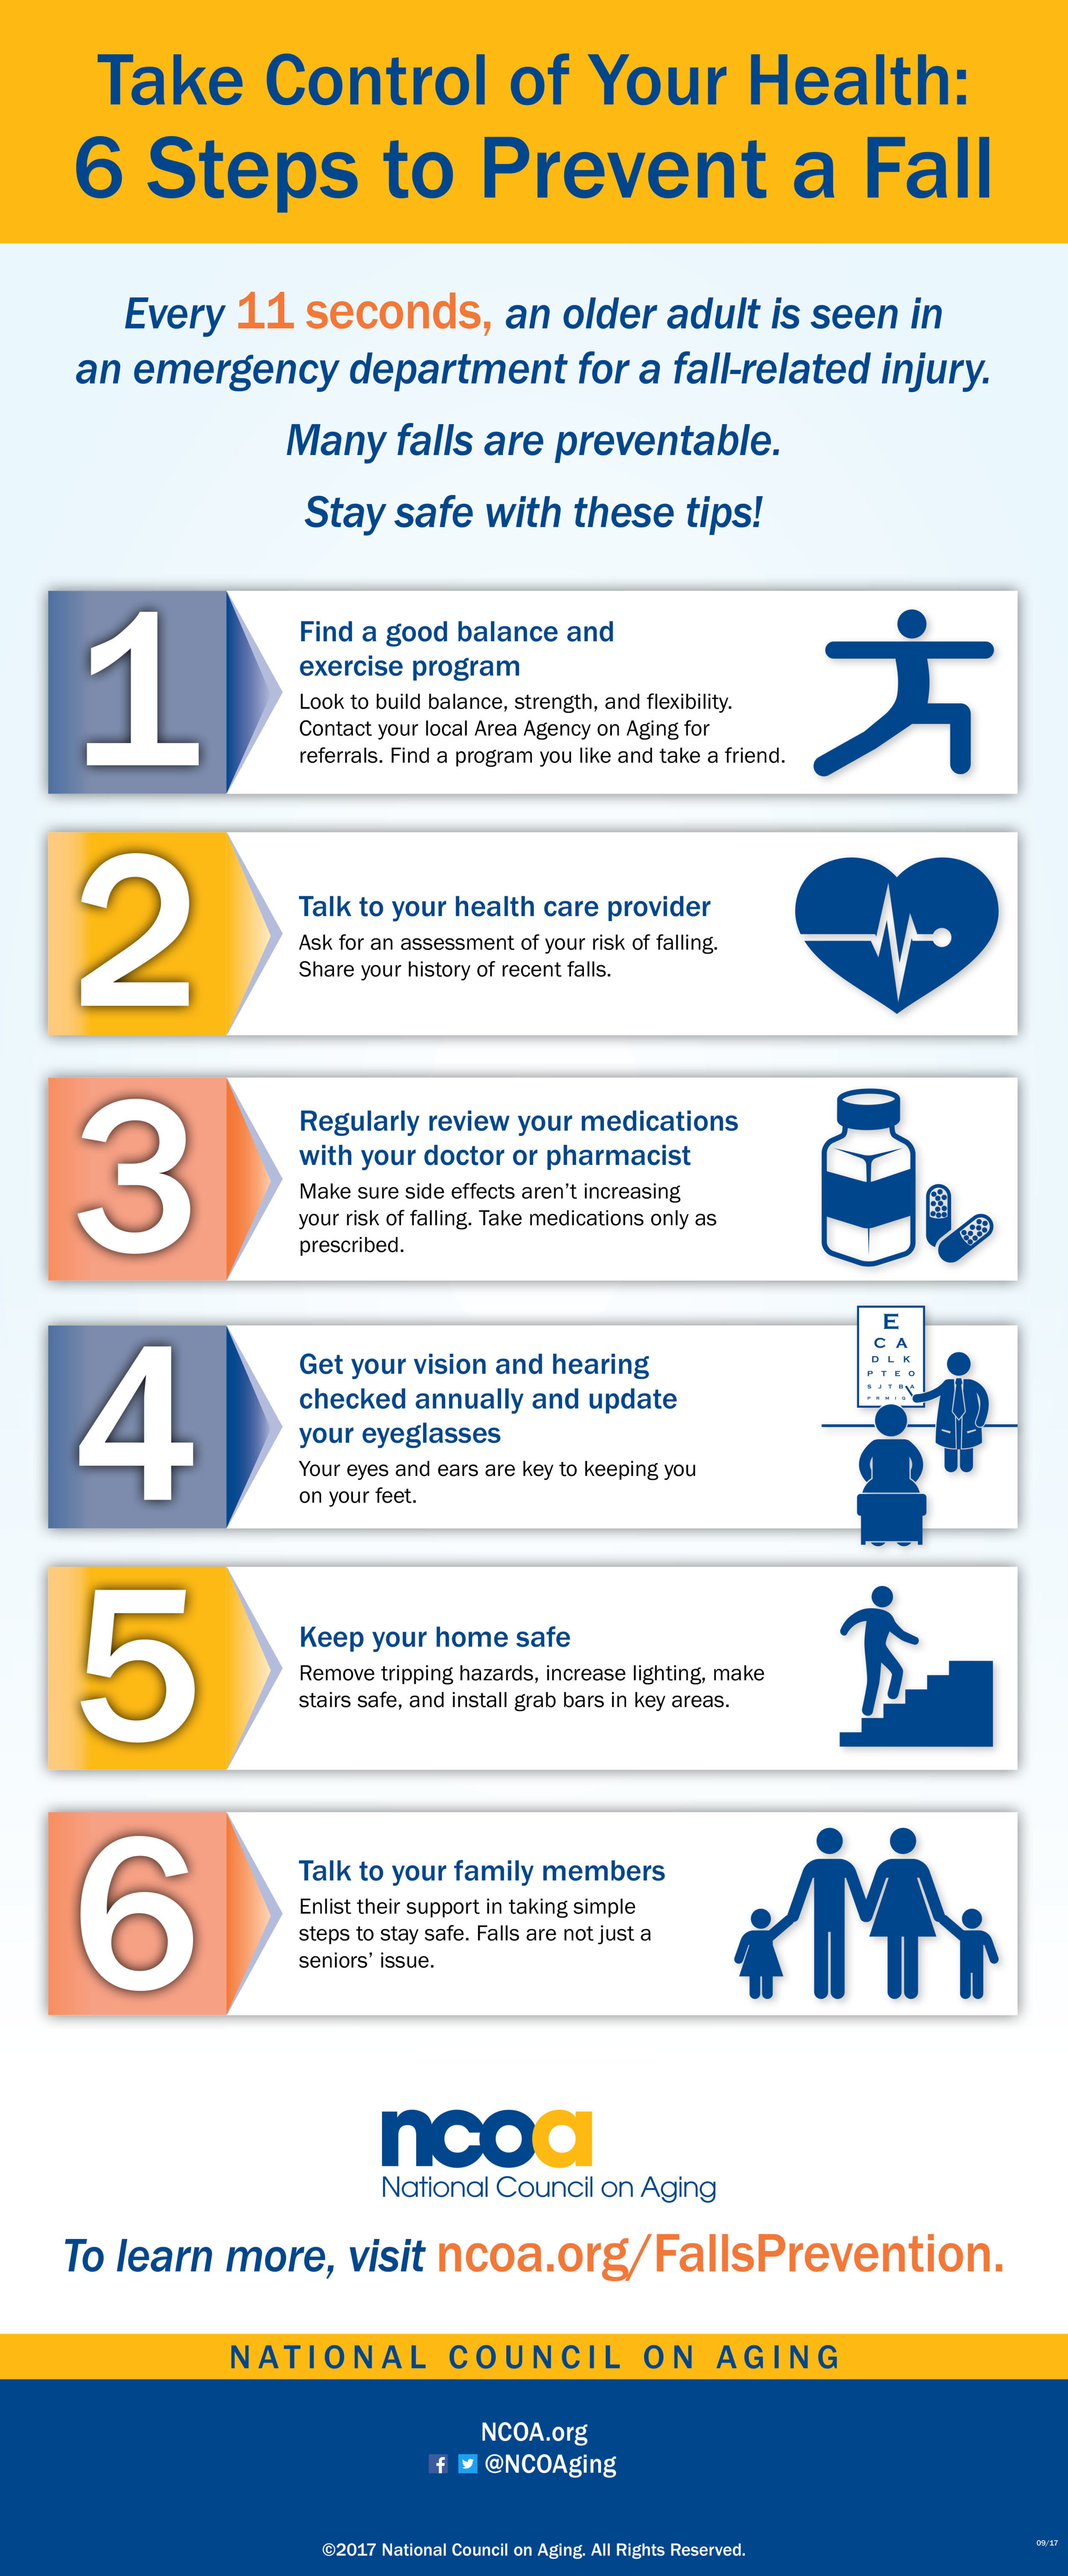 NCOA-Falls-Free-Infographic-680pixels-0917.png